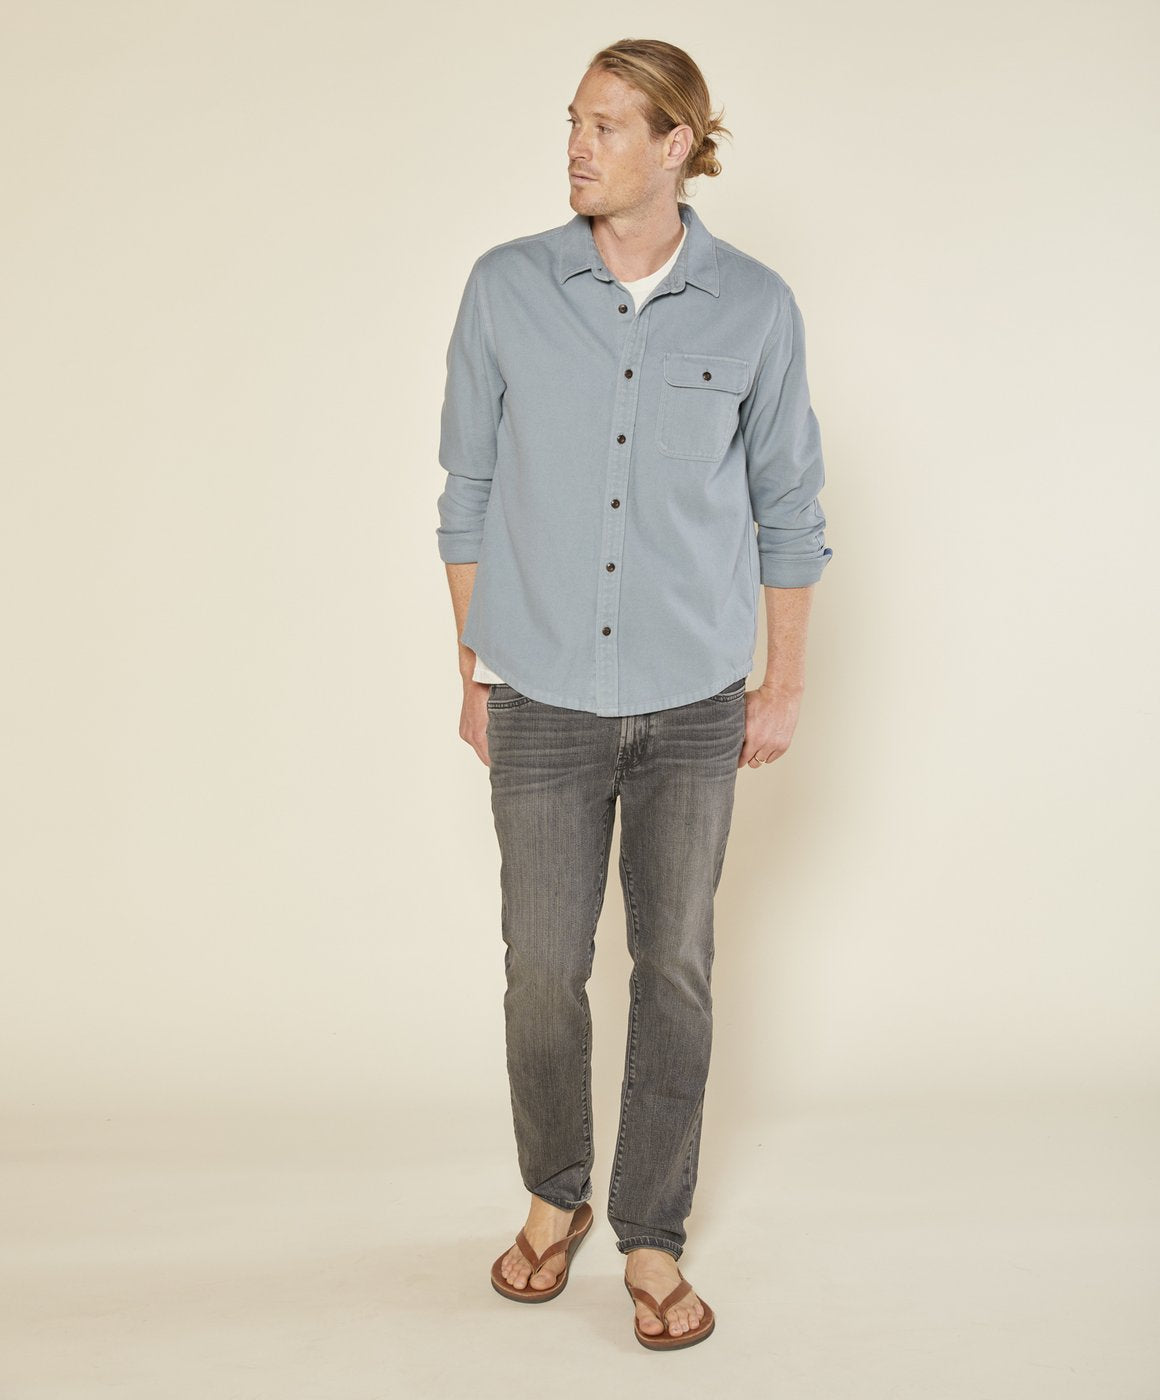 RAMBLER SHIRT - ASH BLUE